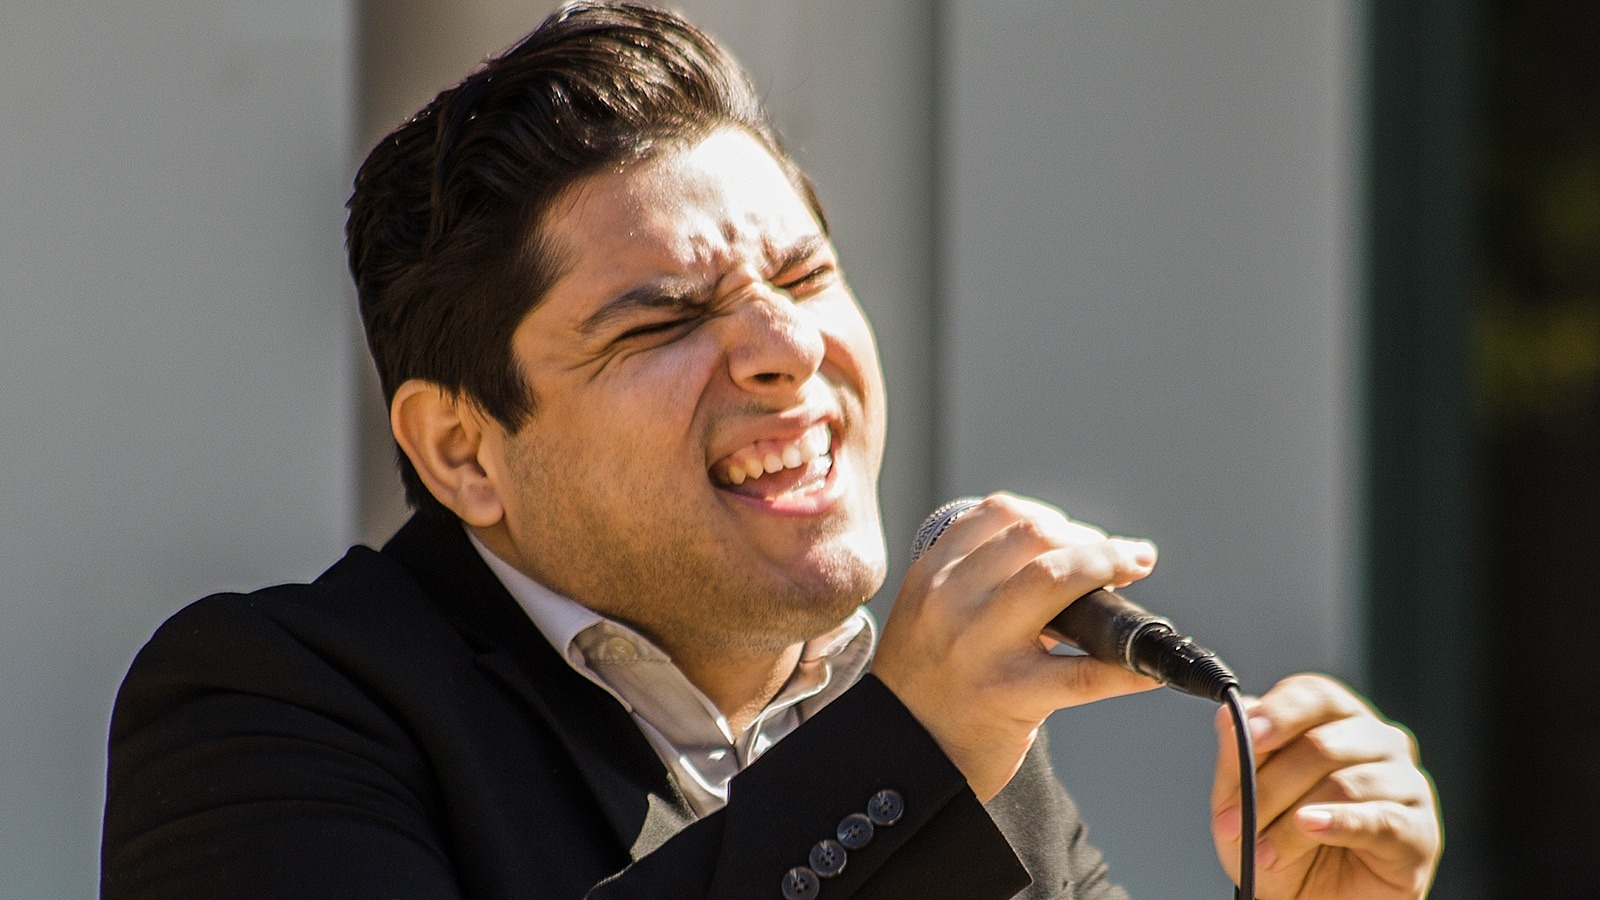 William Nestlehutt/Courier Bobby Novoa, one of PCC's Studio Jazz solo vocalists, performing by the Memorial Wall in the Center for the Arts West Patio on 10/25/2016